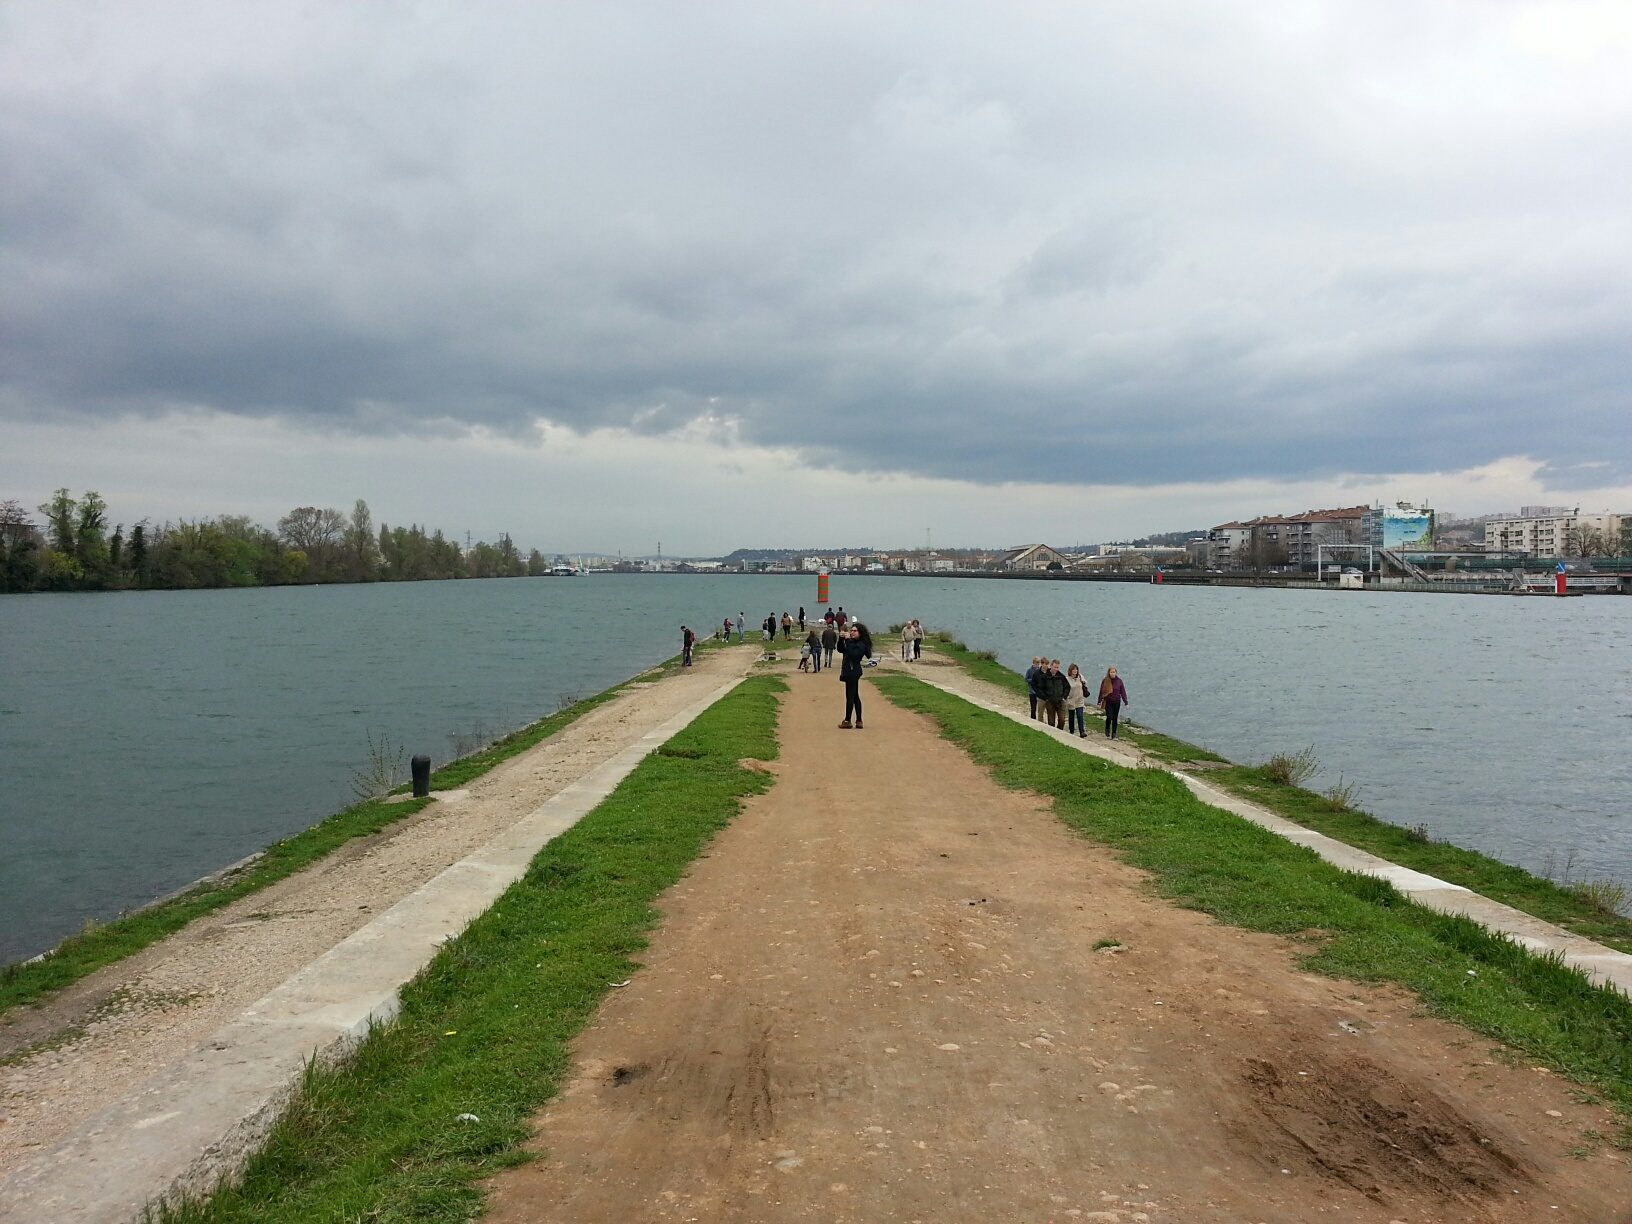 Confluence of Saone with Rhone